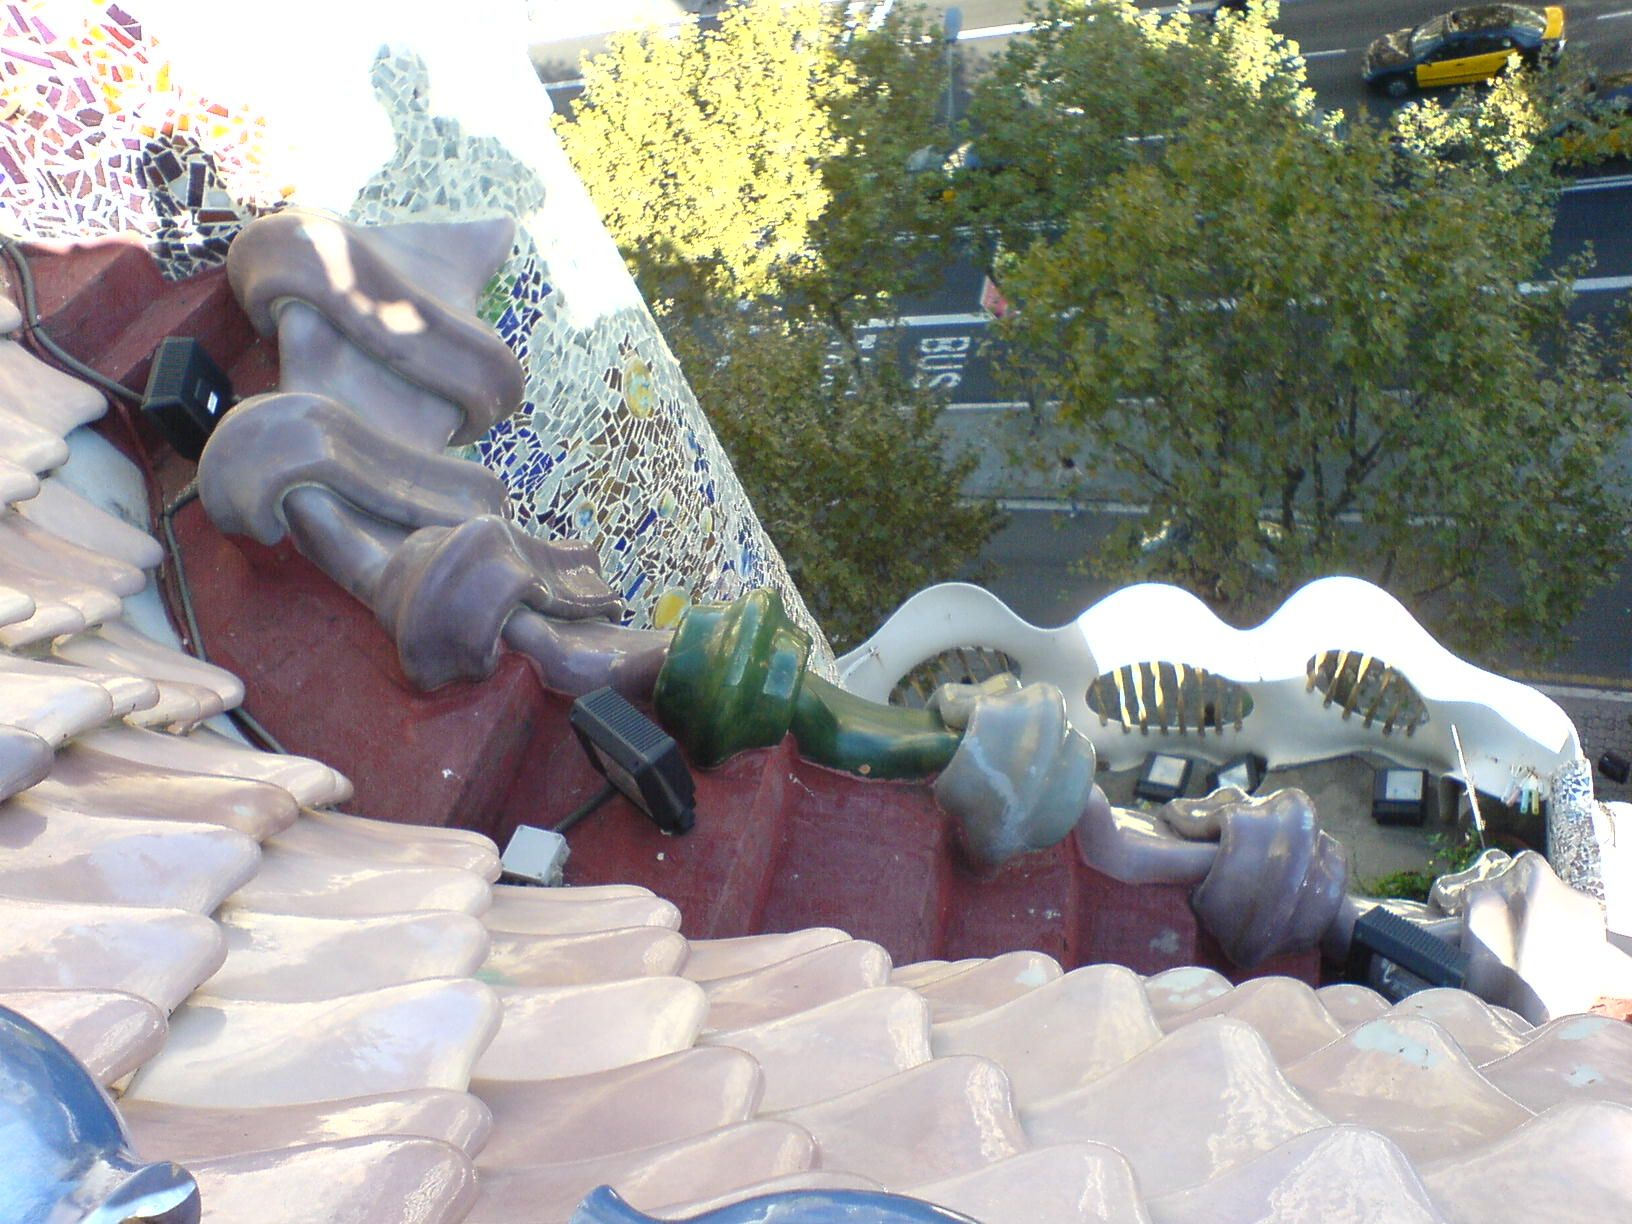 Casa Batllo roofing and tilework